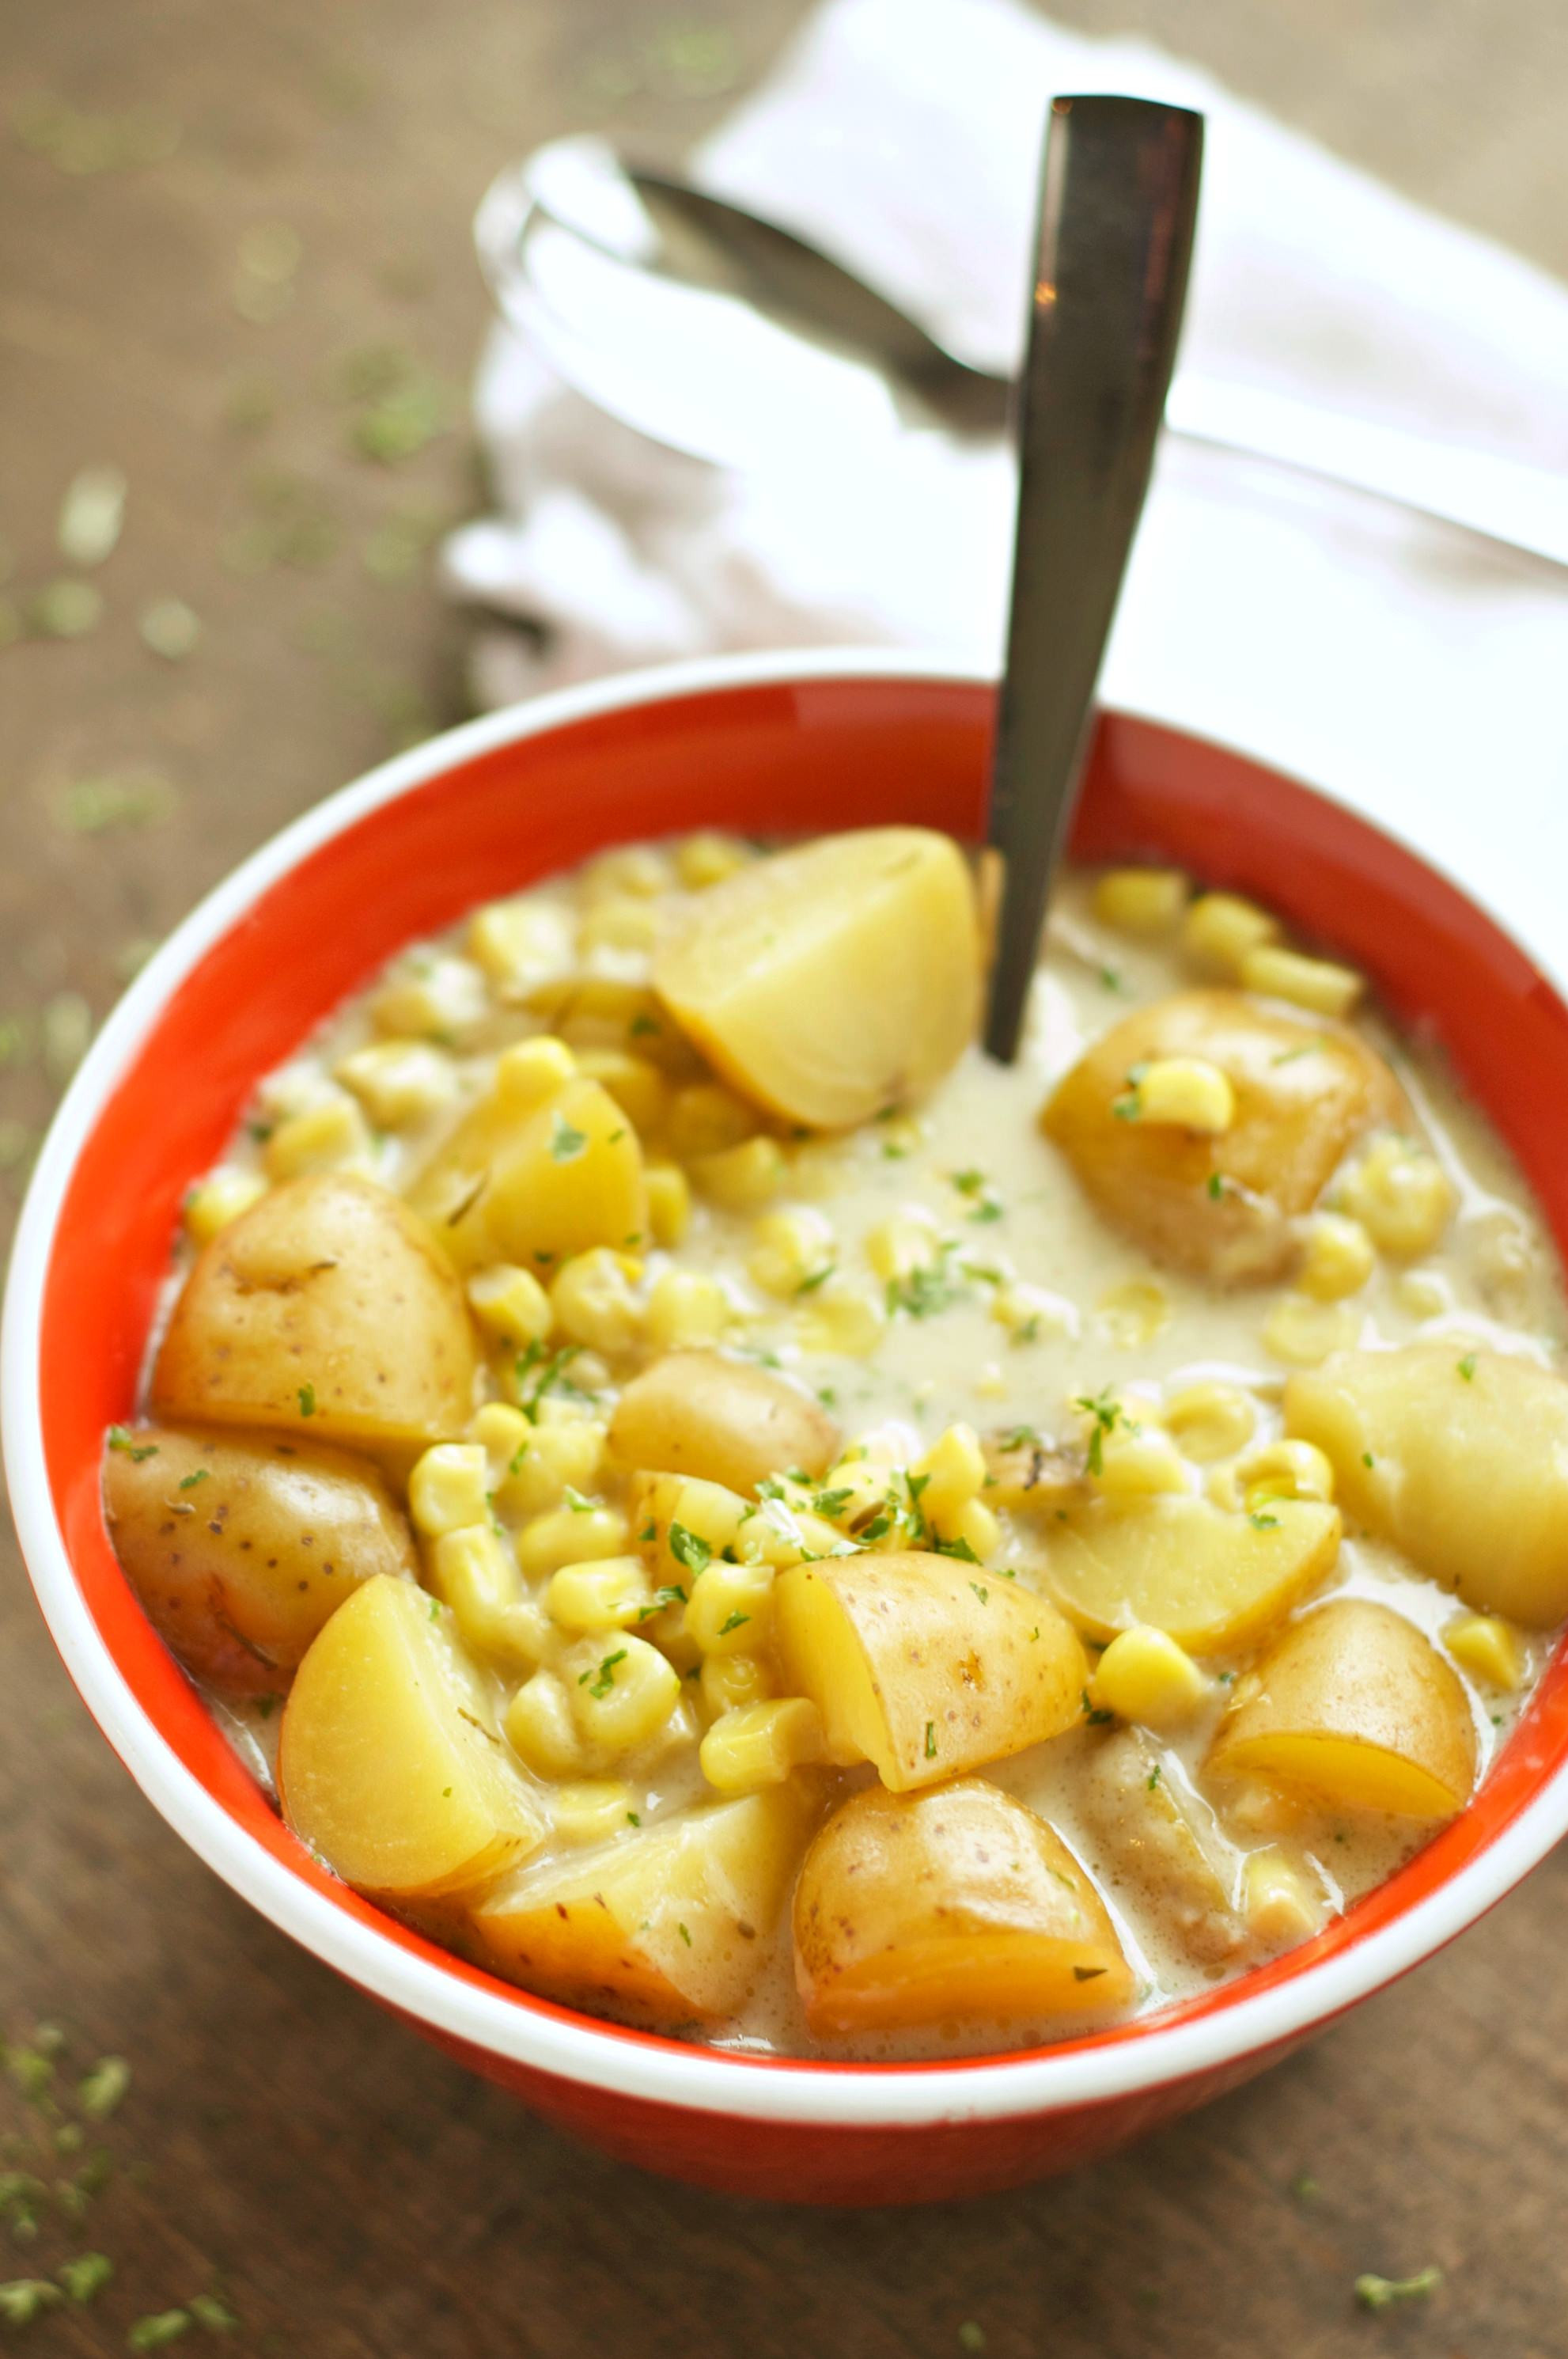 Crockpot Potato Recipes  Slow Cooker Corn and Potato Chowder